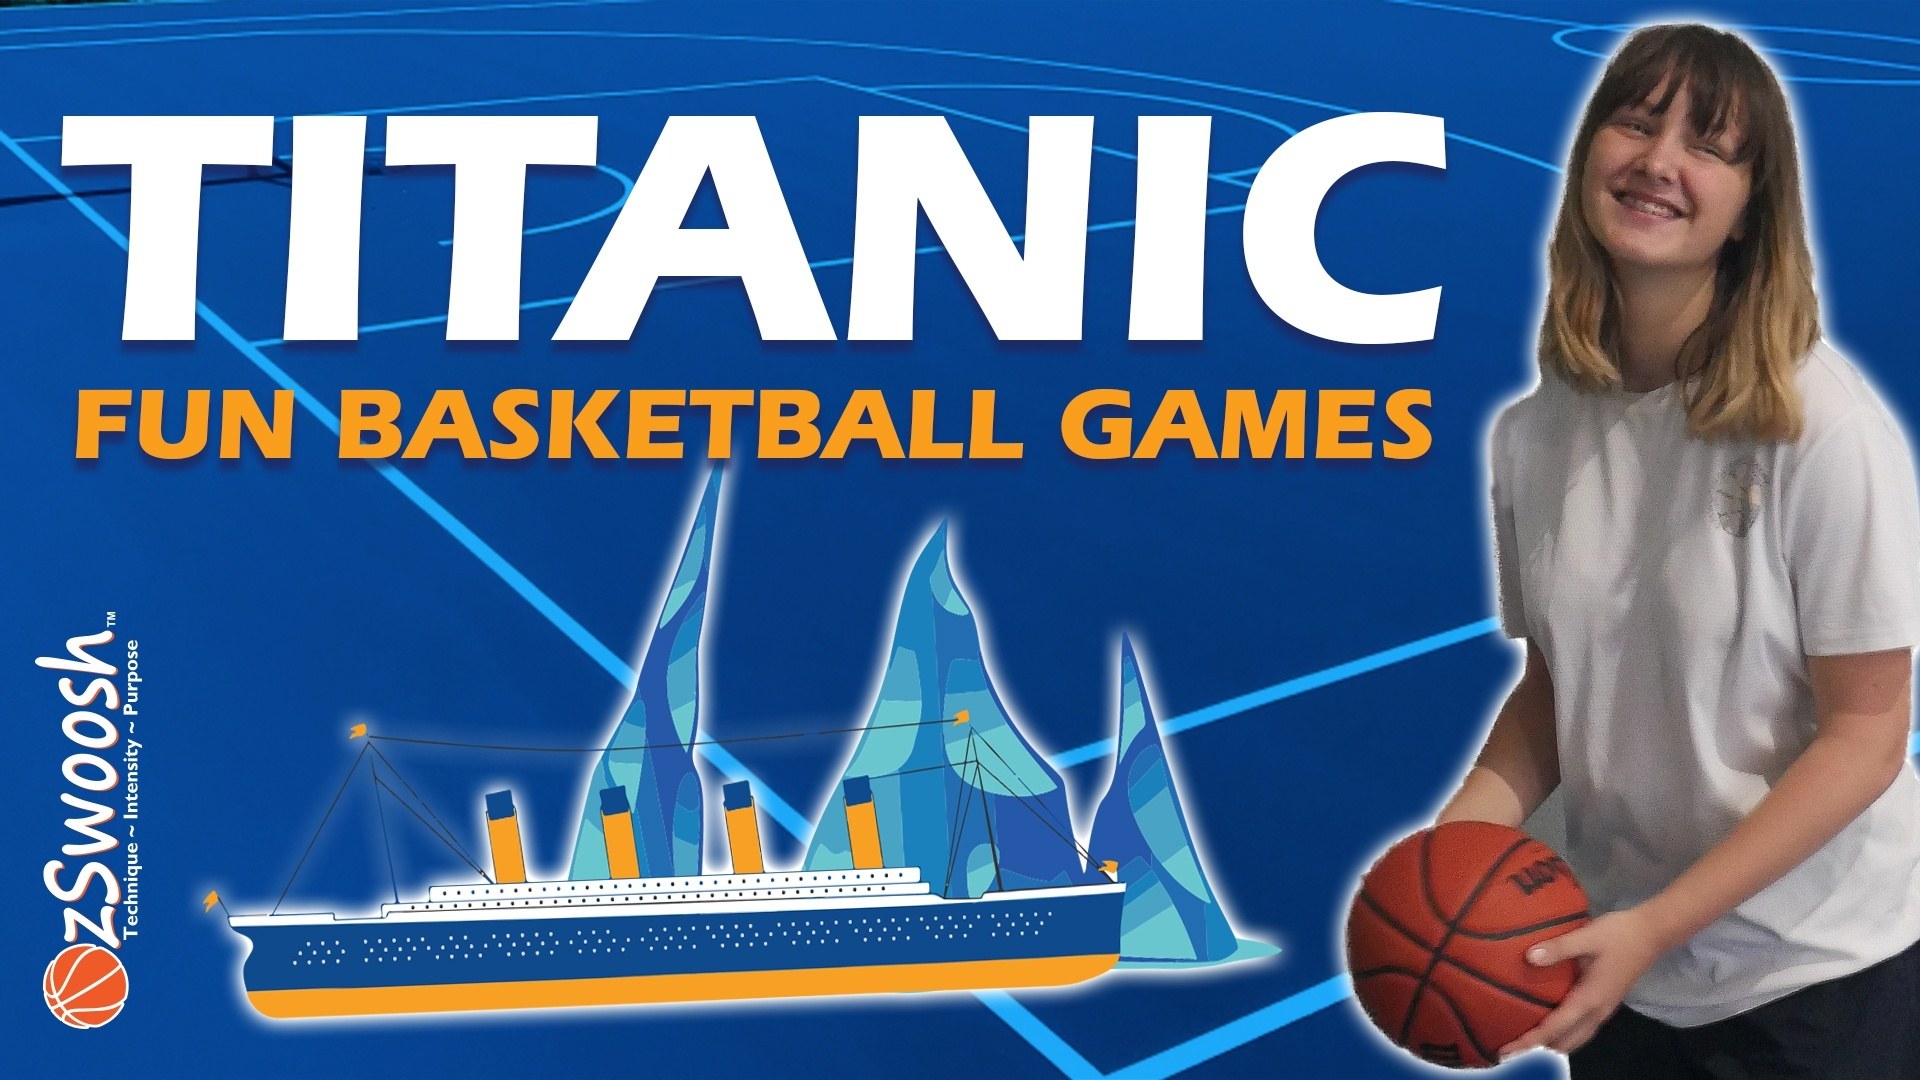 Titanic Basketball Shooting Game for kds